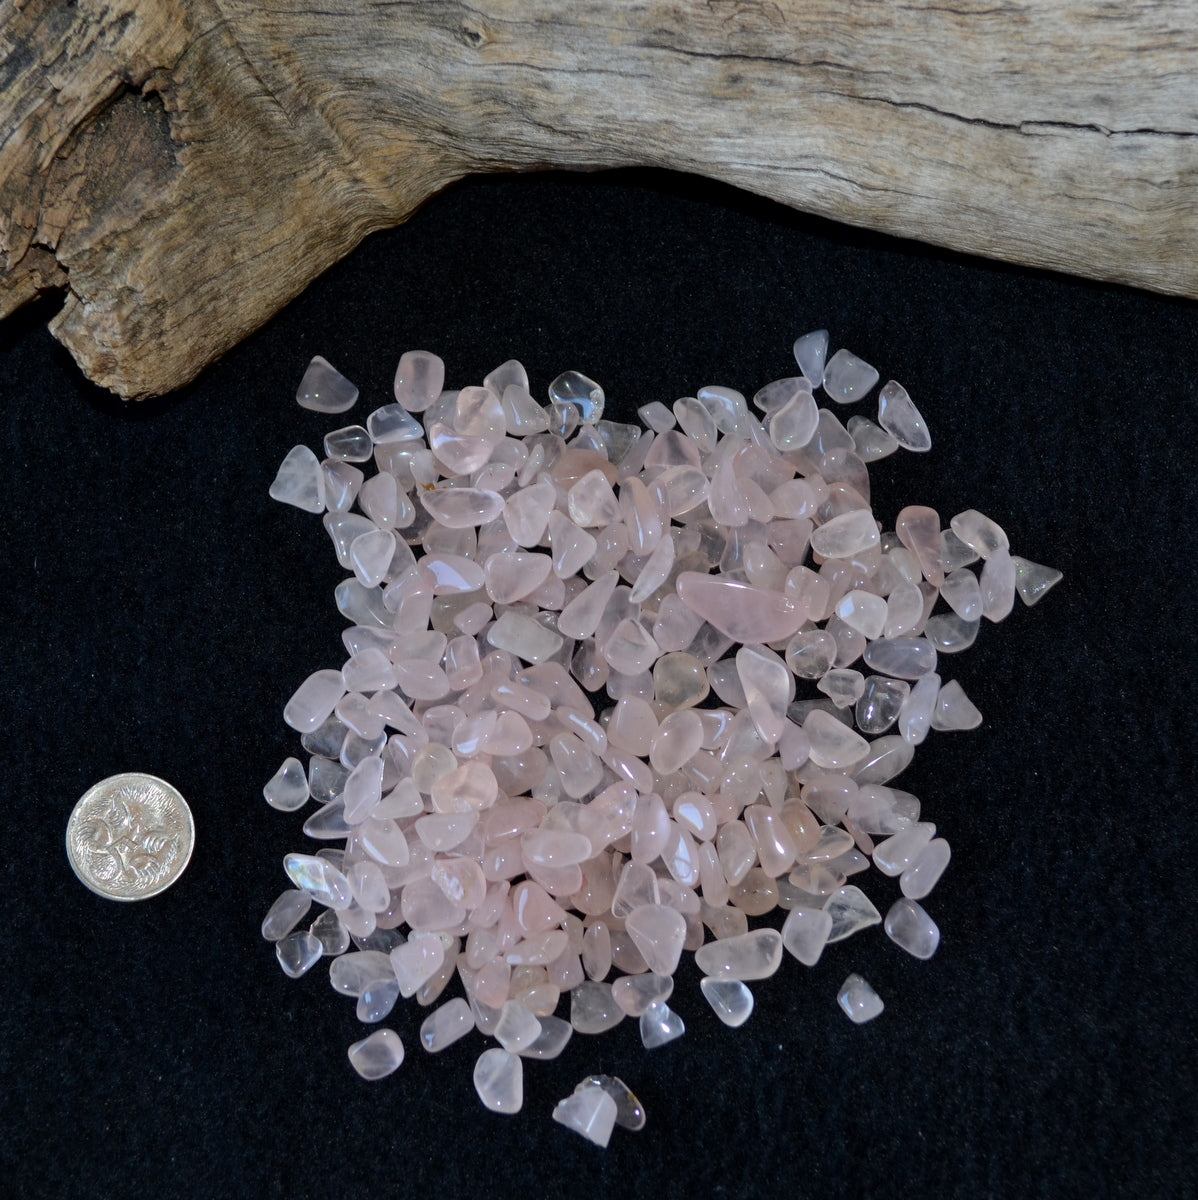 Rose Quartz Mini Polished Tumbles/Chips 100gms Each (T24-10R)